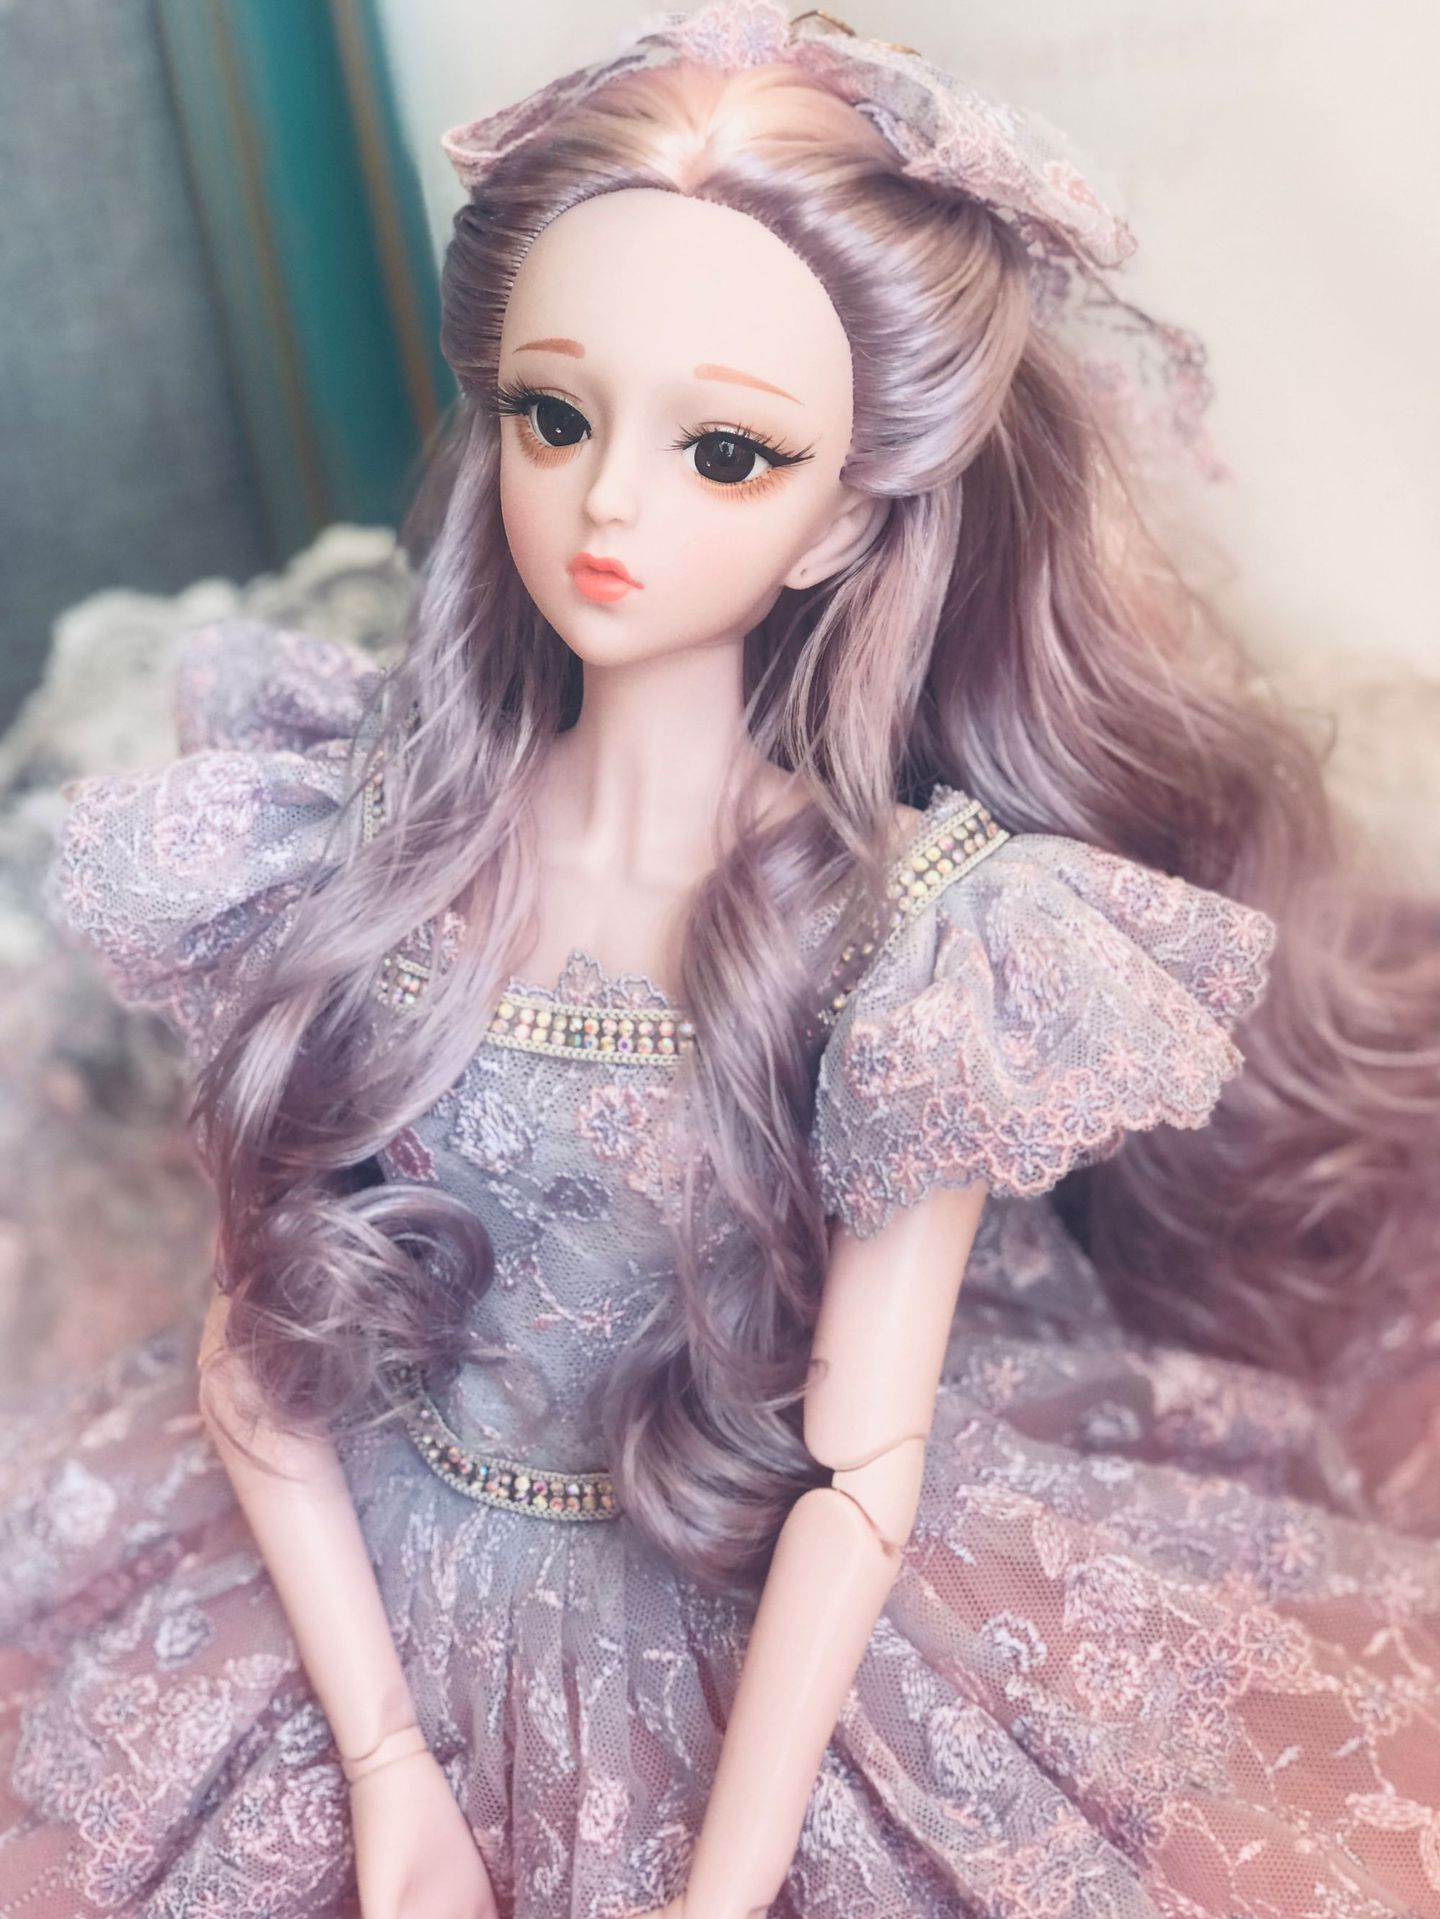 Hot 60CM 1/3 BJD Spherical Joint Doll Toy 3D Black Eyes Long Wig Ordinary Skin Plastic Nude Fashion Makeup DIY Girl Gift Doll new 21 movable joint 60cm bjd doll 3d eyes long wig detachable hair cover 1 3 fashion dress up body doll girl toy christmas gift